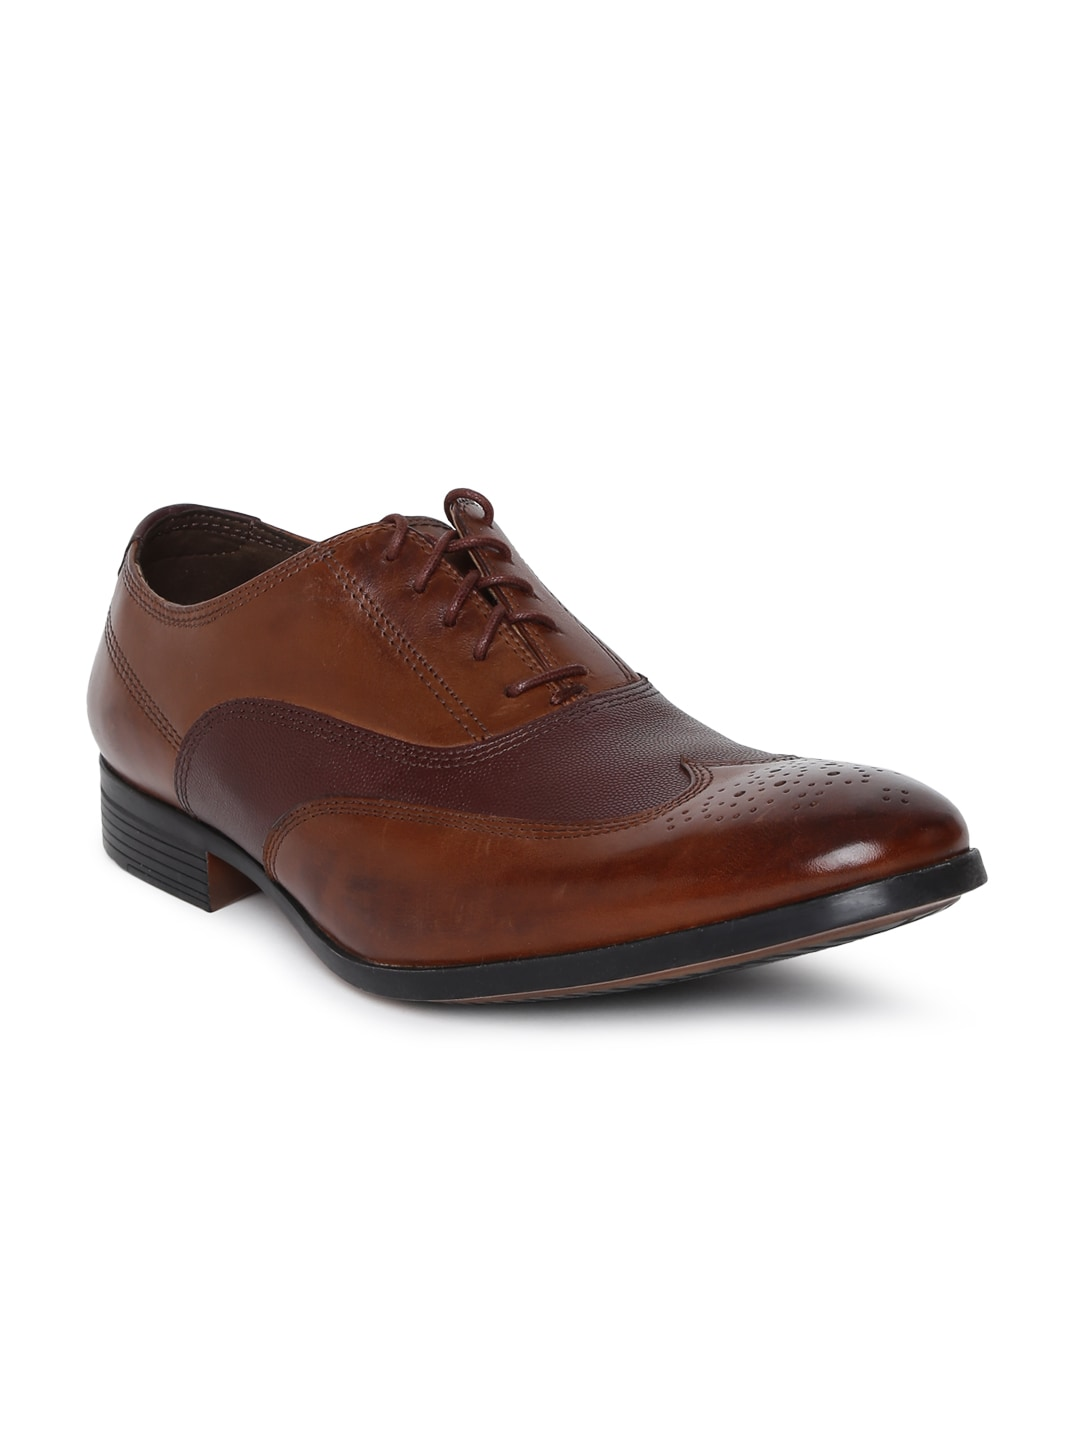 718b27998 CLARKS - Exclusive Clarks Shoes Online Store in India - Myntra